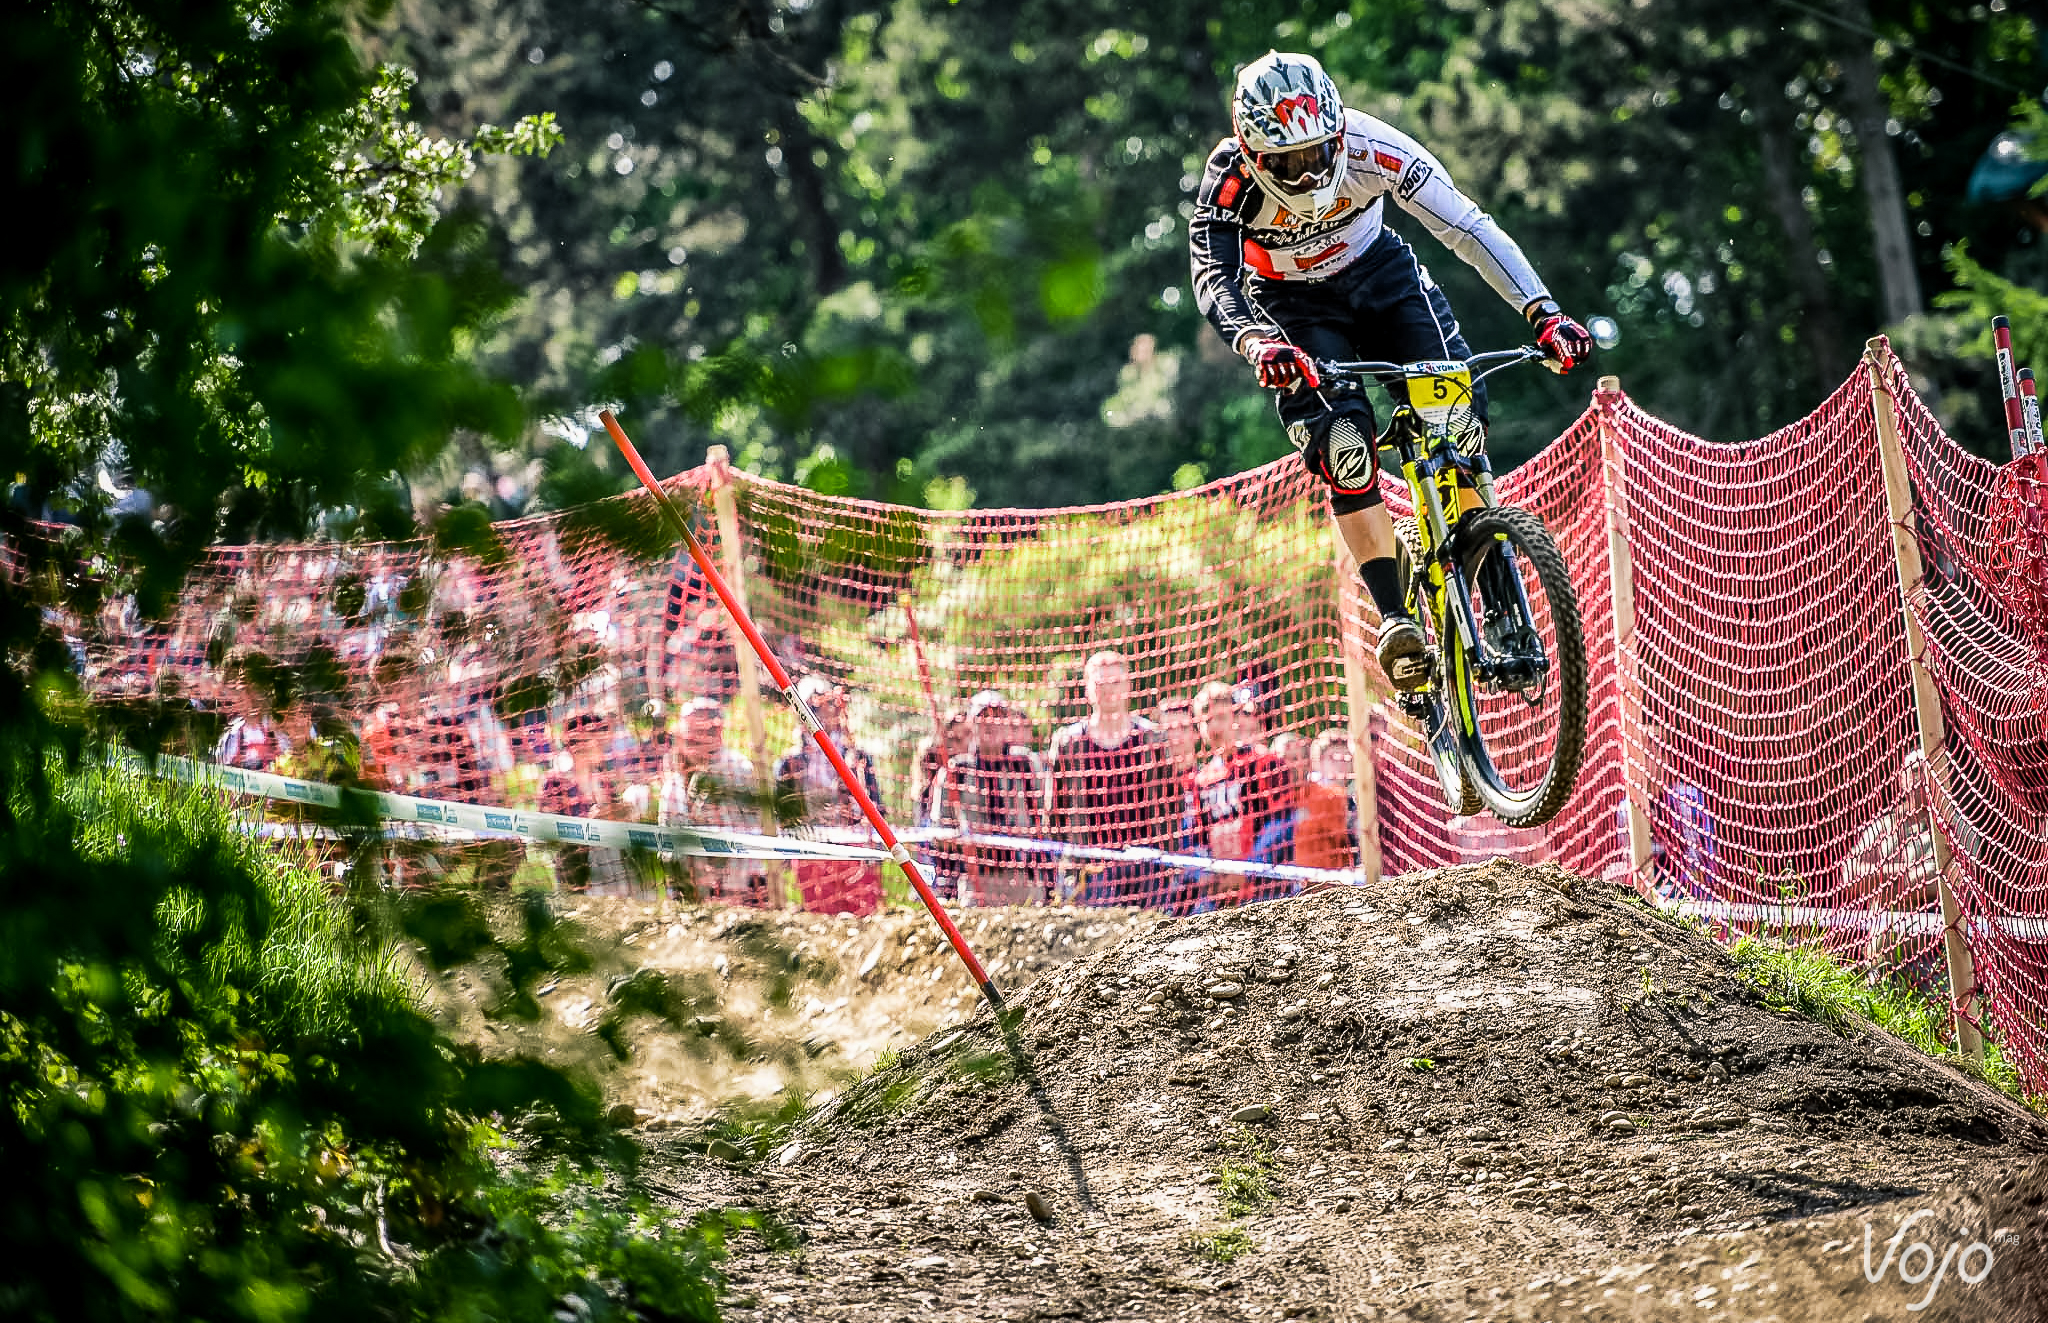 Coupe-France-DH_Lyon_LaSarra-copyright-Romain-Laurent-VojoMag-25